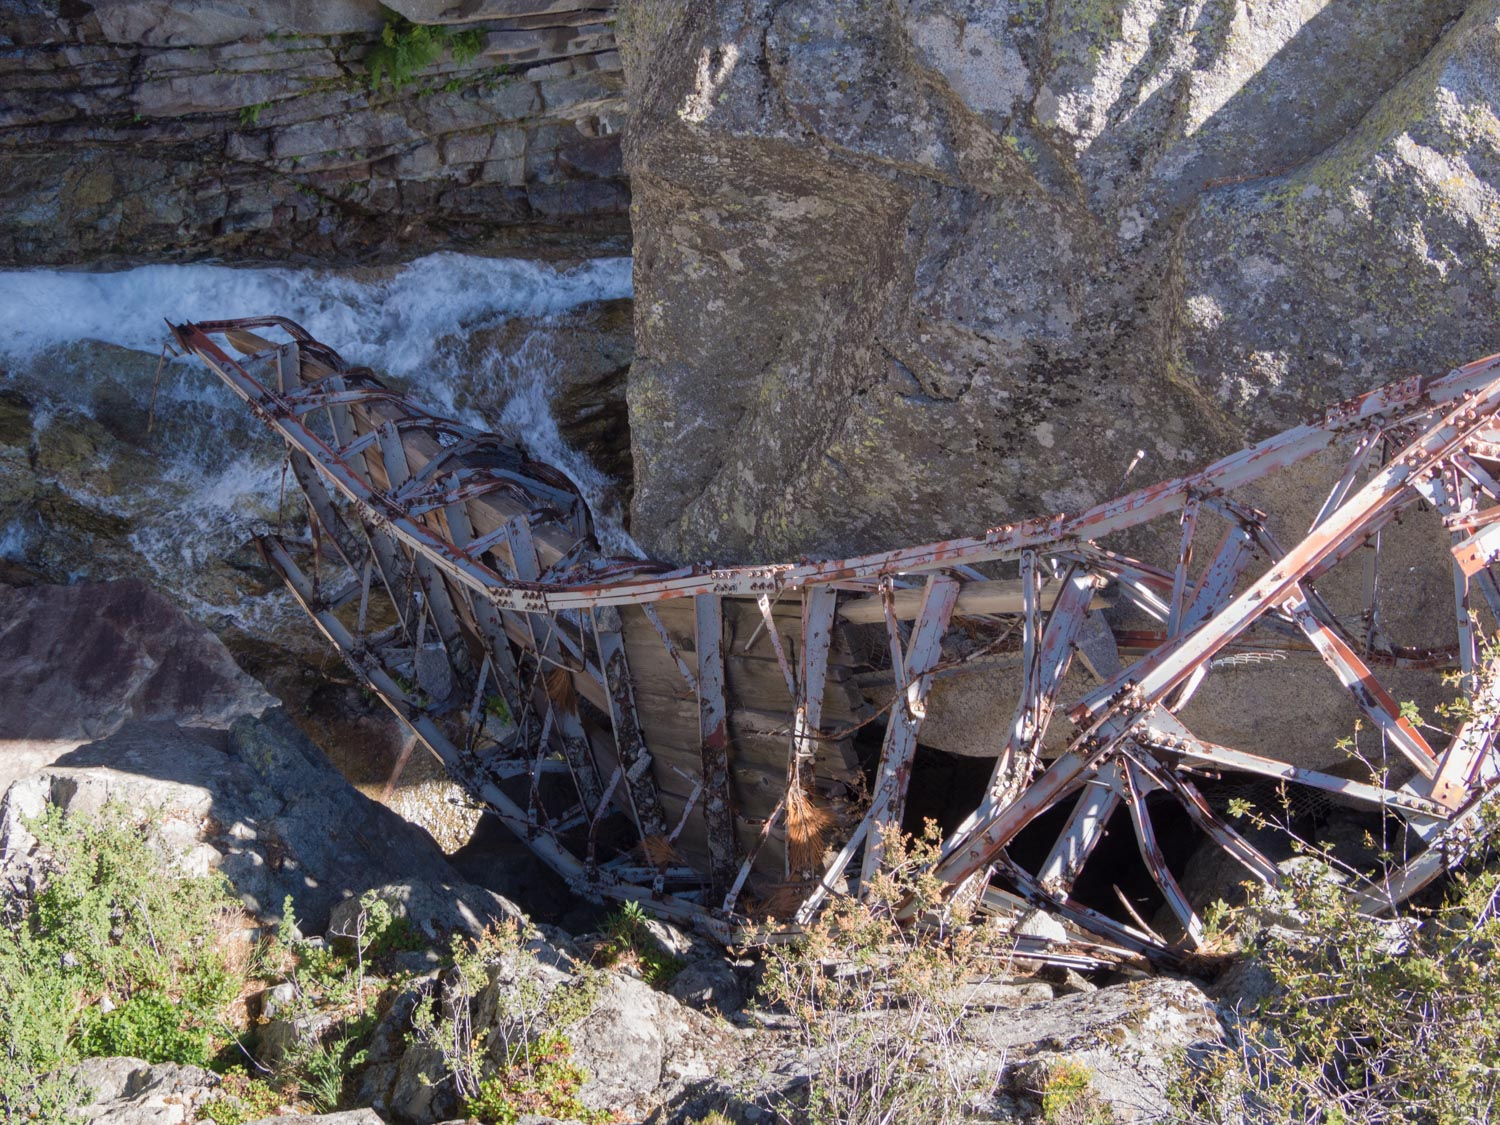 The older bridge at the bottom of the gorge